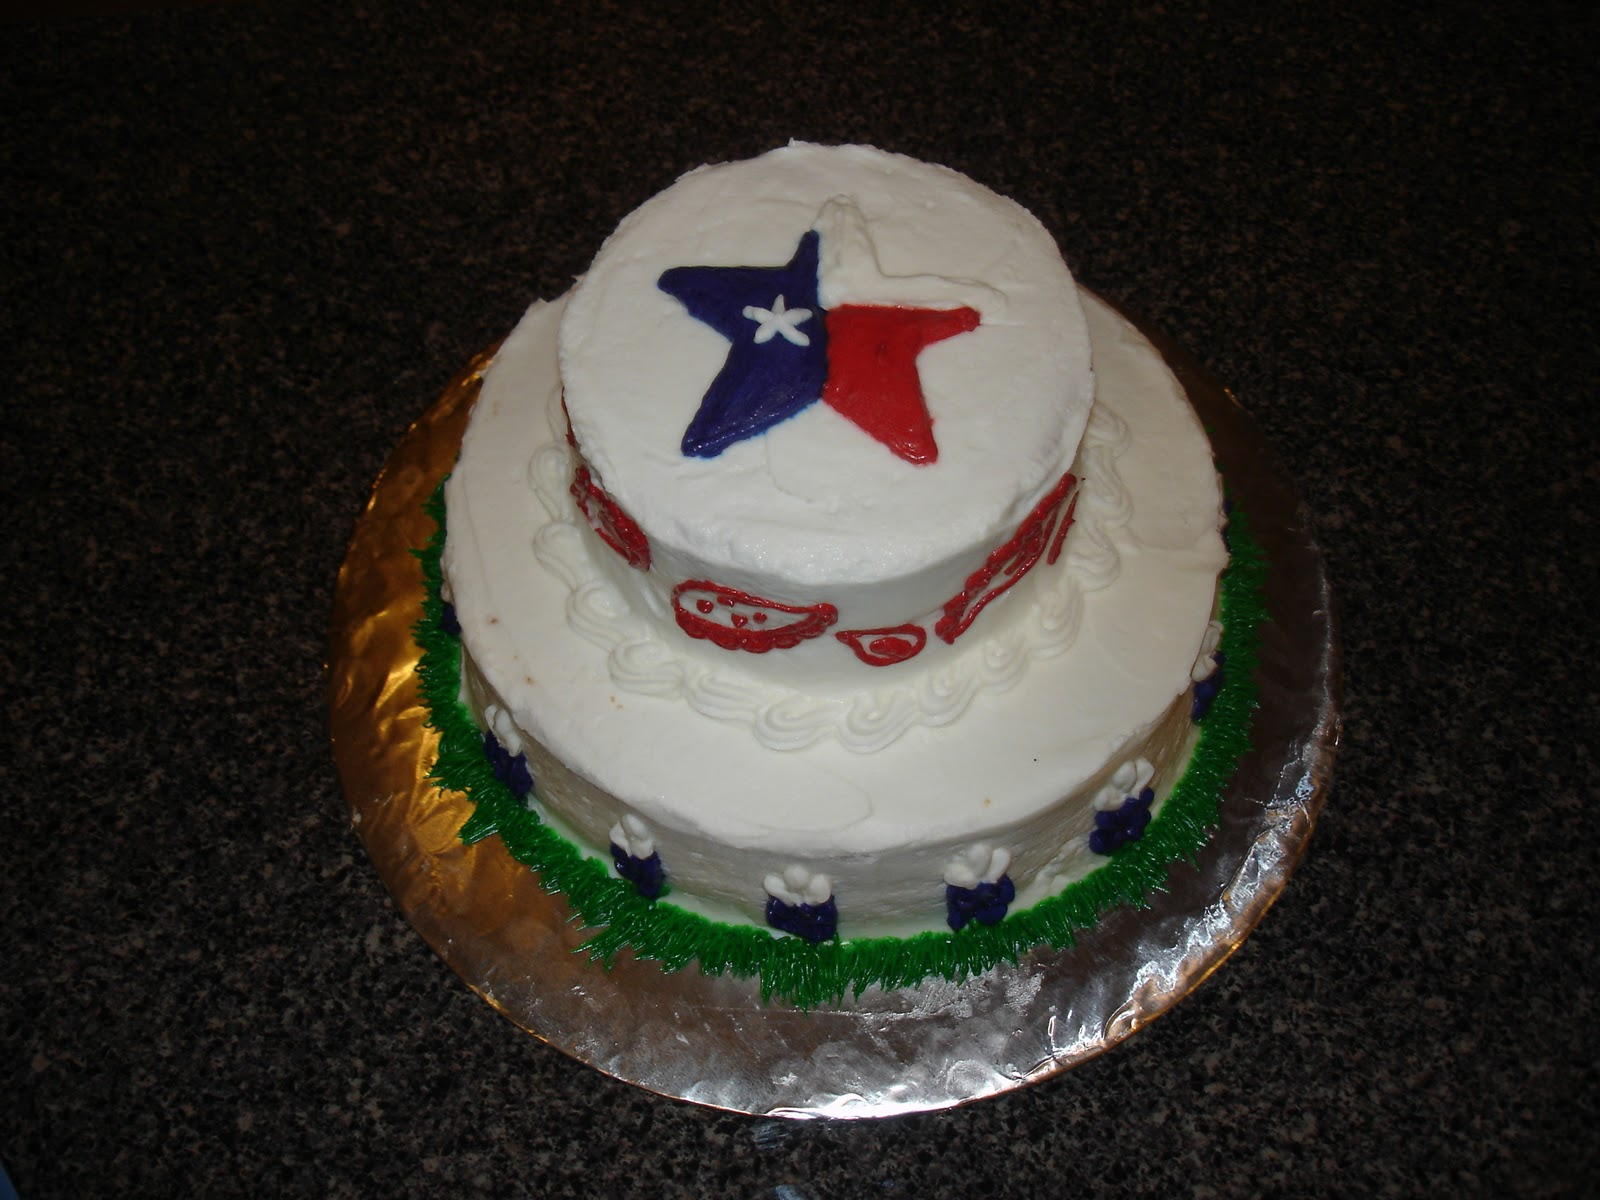 Cake Decorating Classes Usa : Adventures in Colorado: Texas Beginnings: Going Away Party